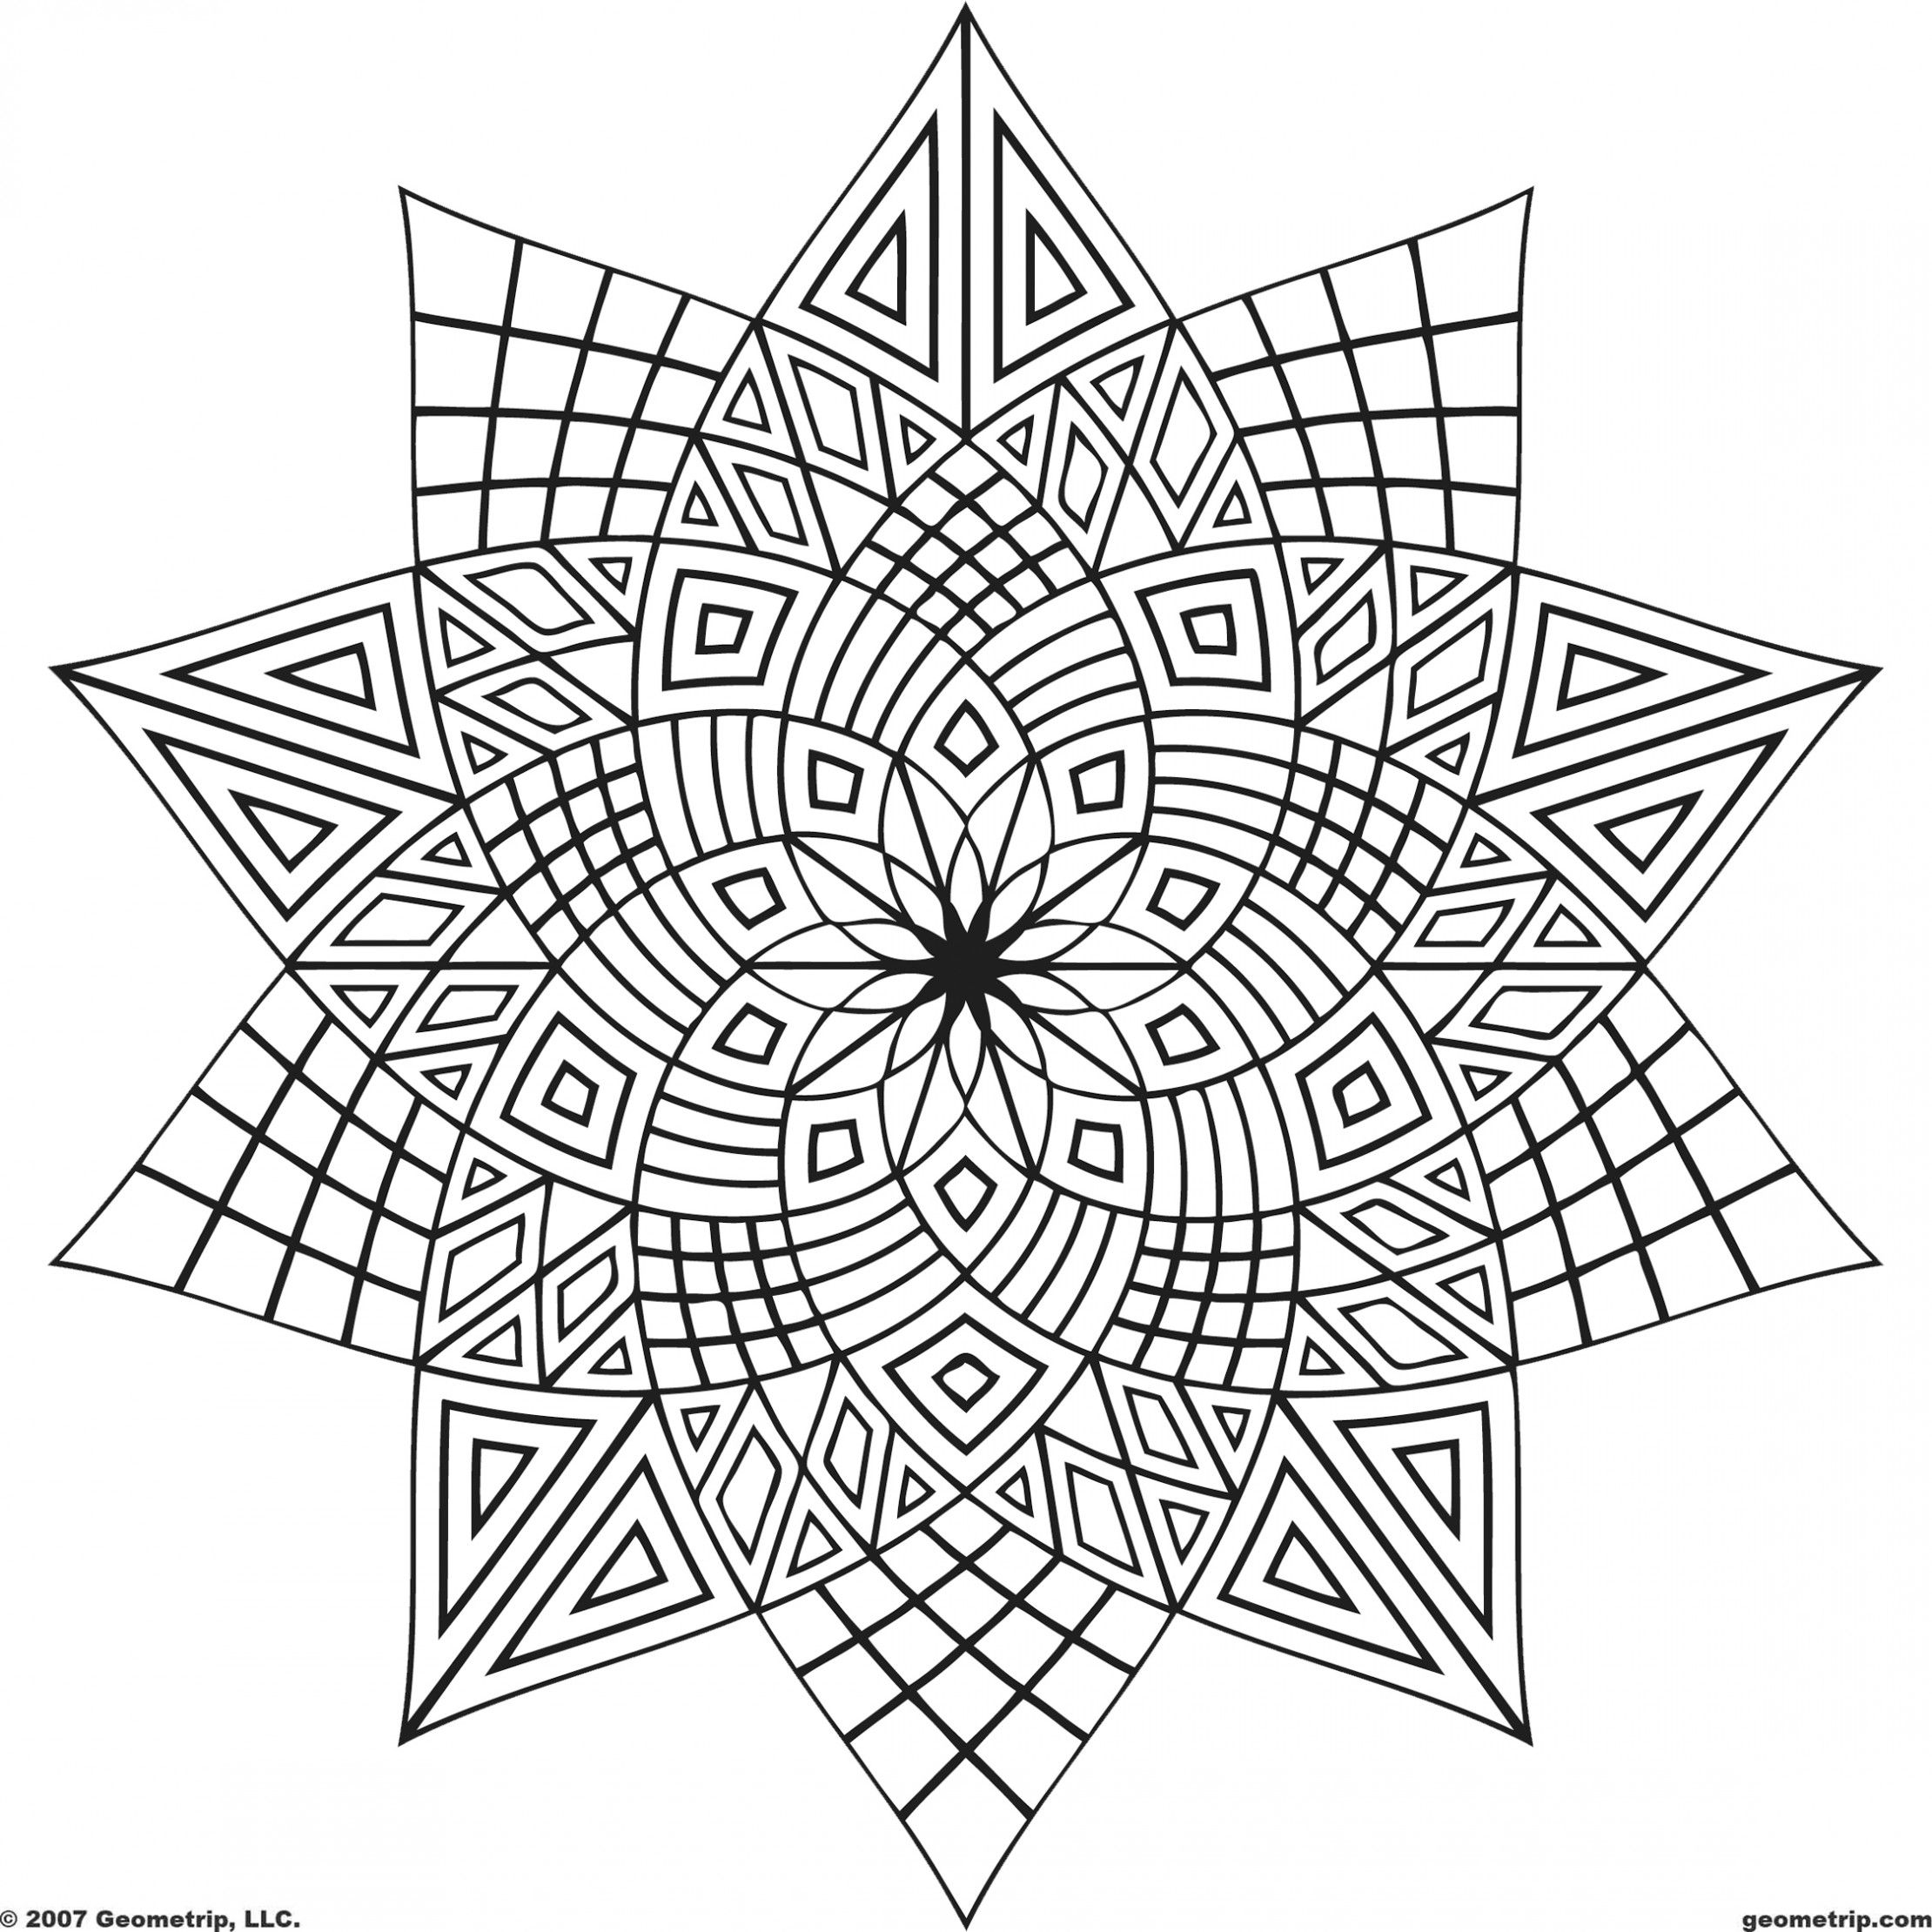 Coloring pages for 9 and up - Http Www Blogcoloringpages Com Wp Content Uploads Geometric Coloring Pages E1366410651833 Jpg Coloring Designs Pinterest Picture Photo